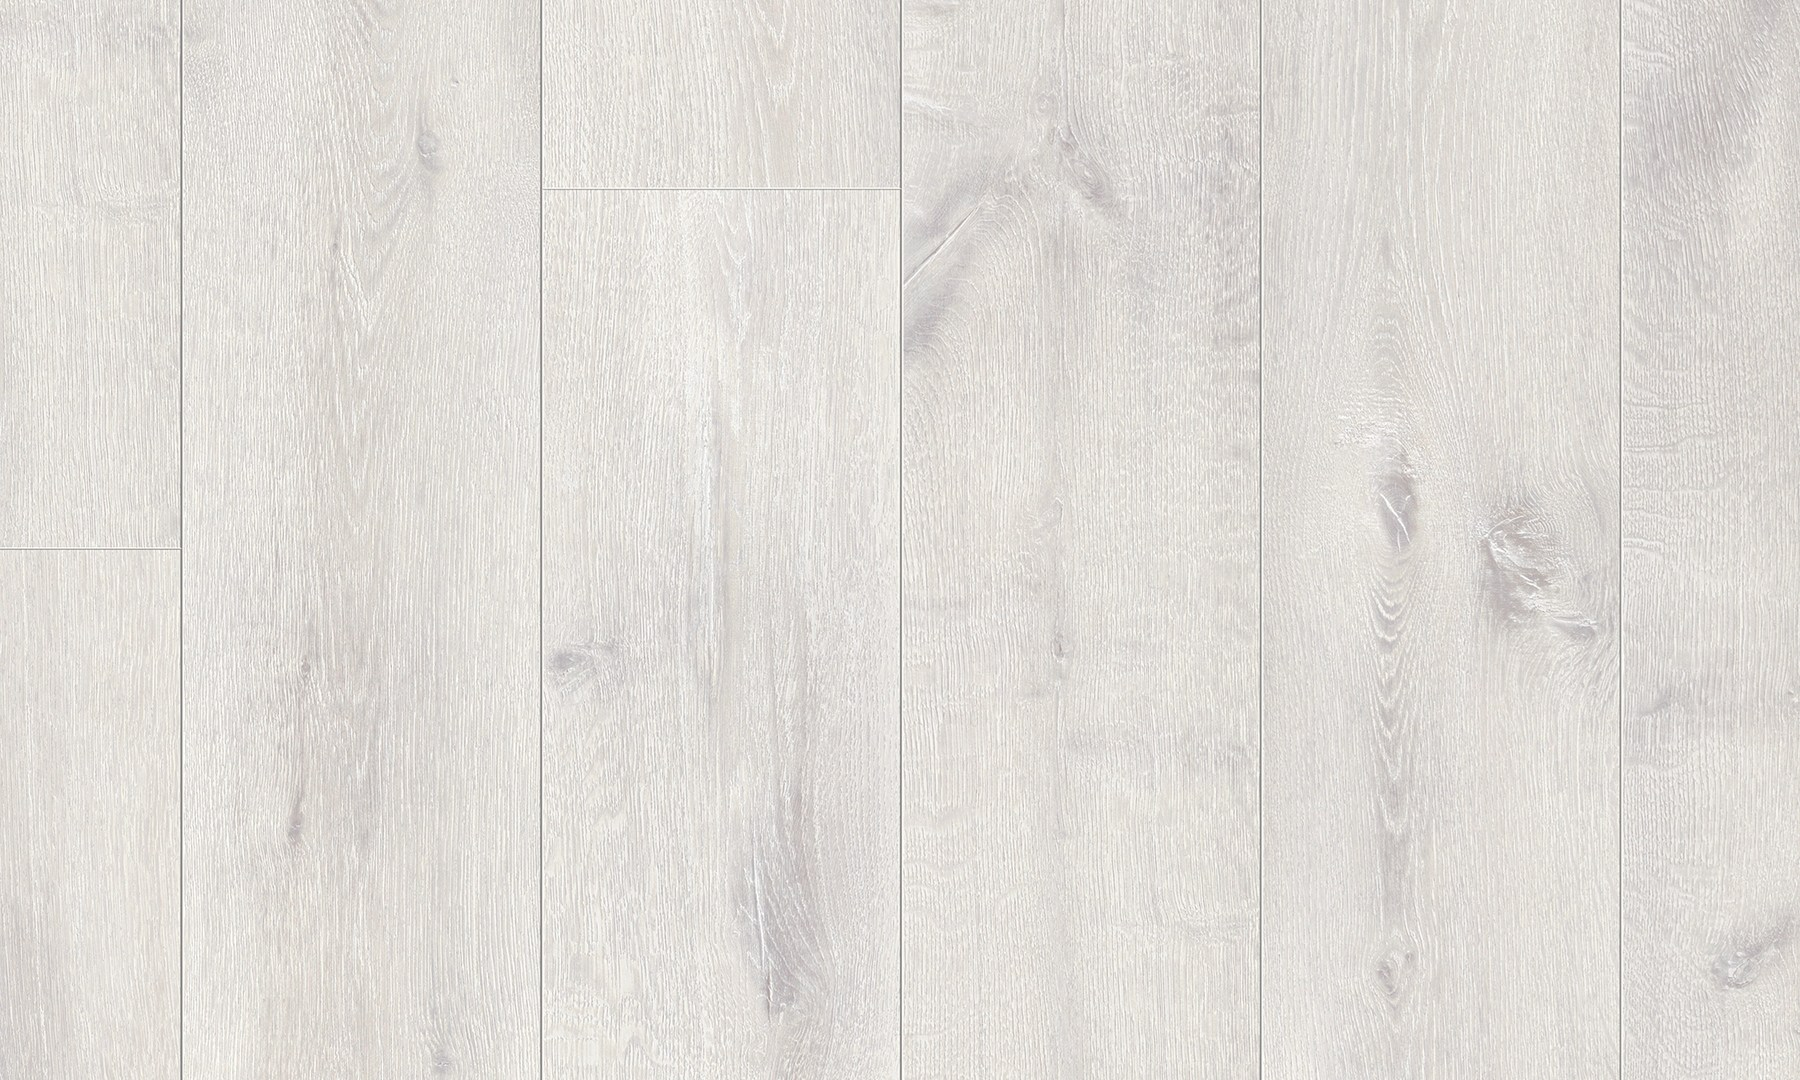 Laminate Flooring With Wood Effect Winter Oak By Pergo